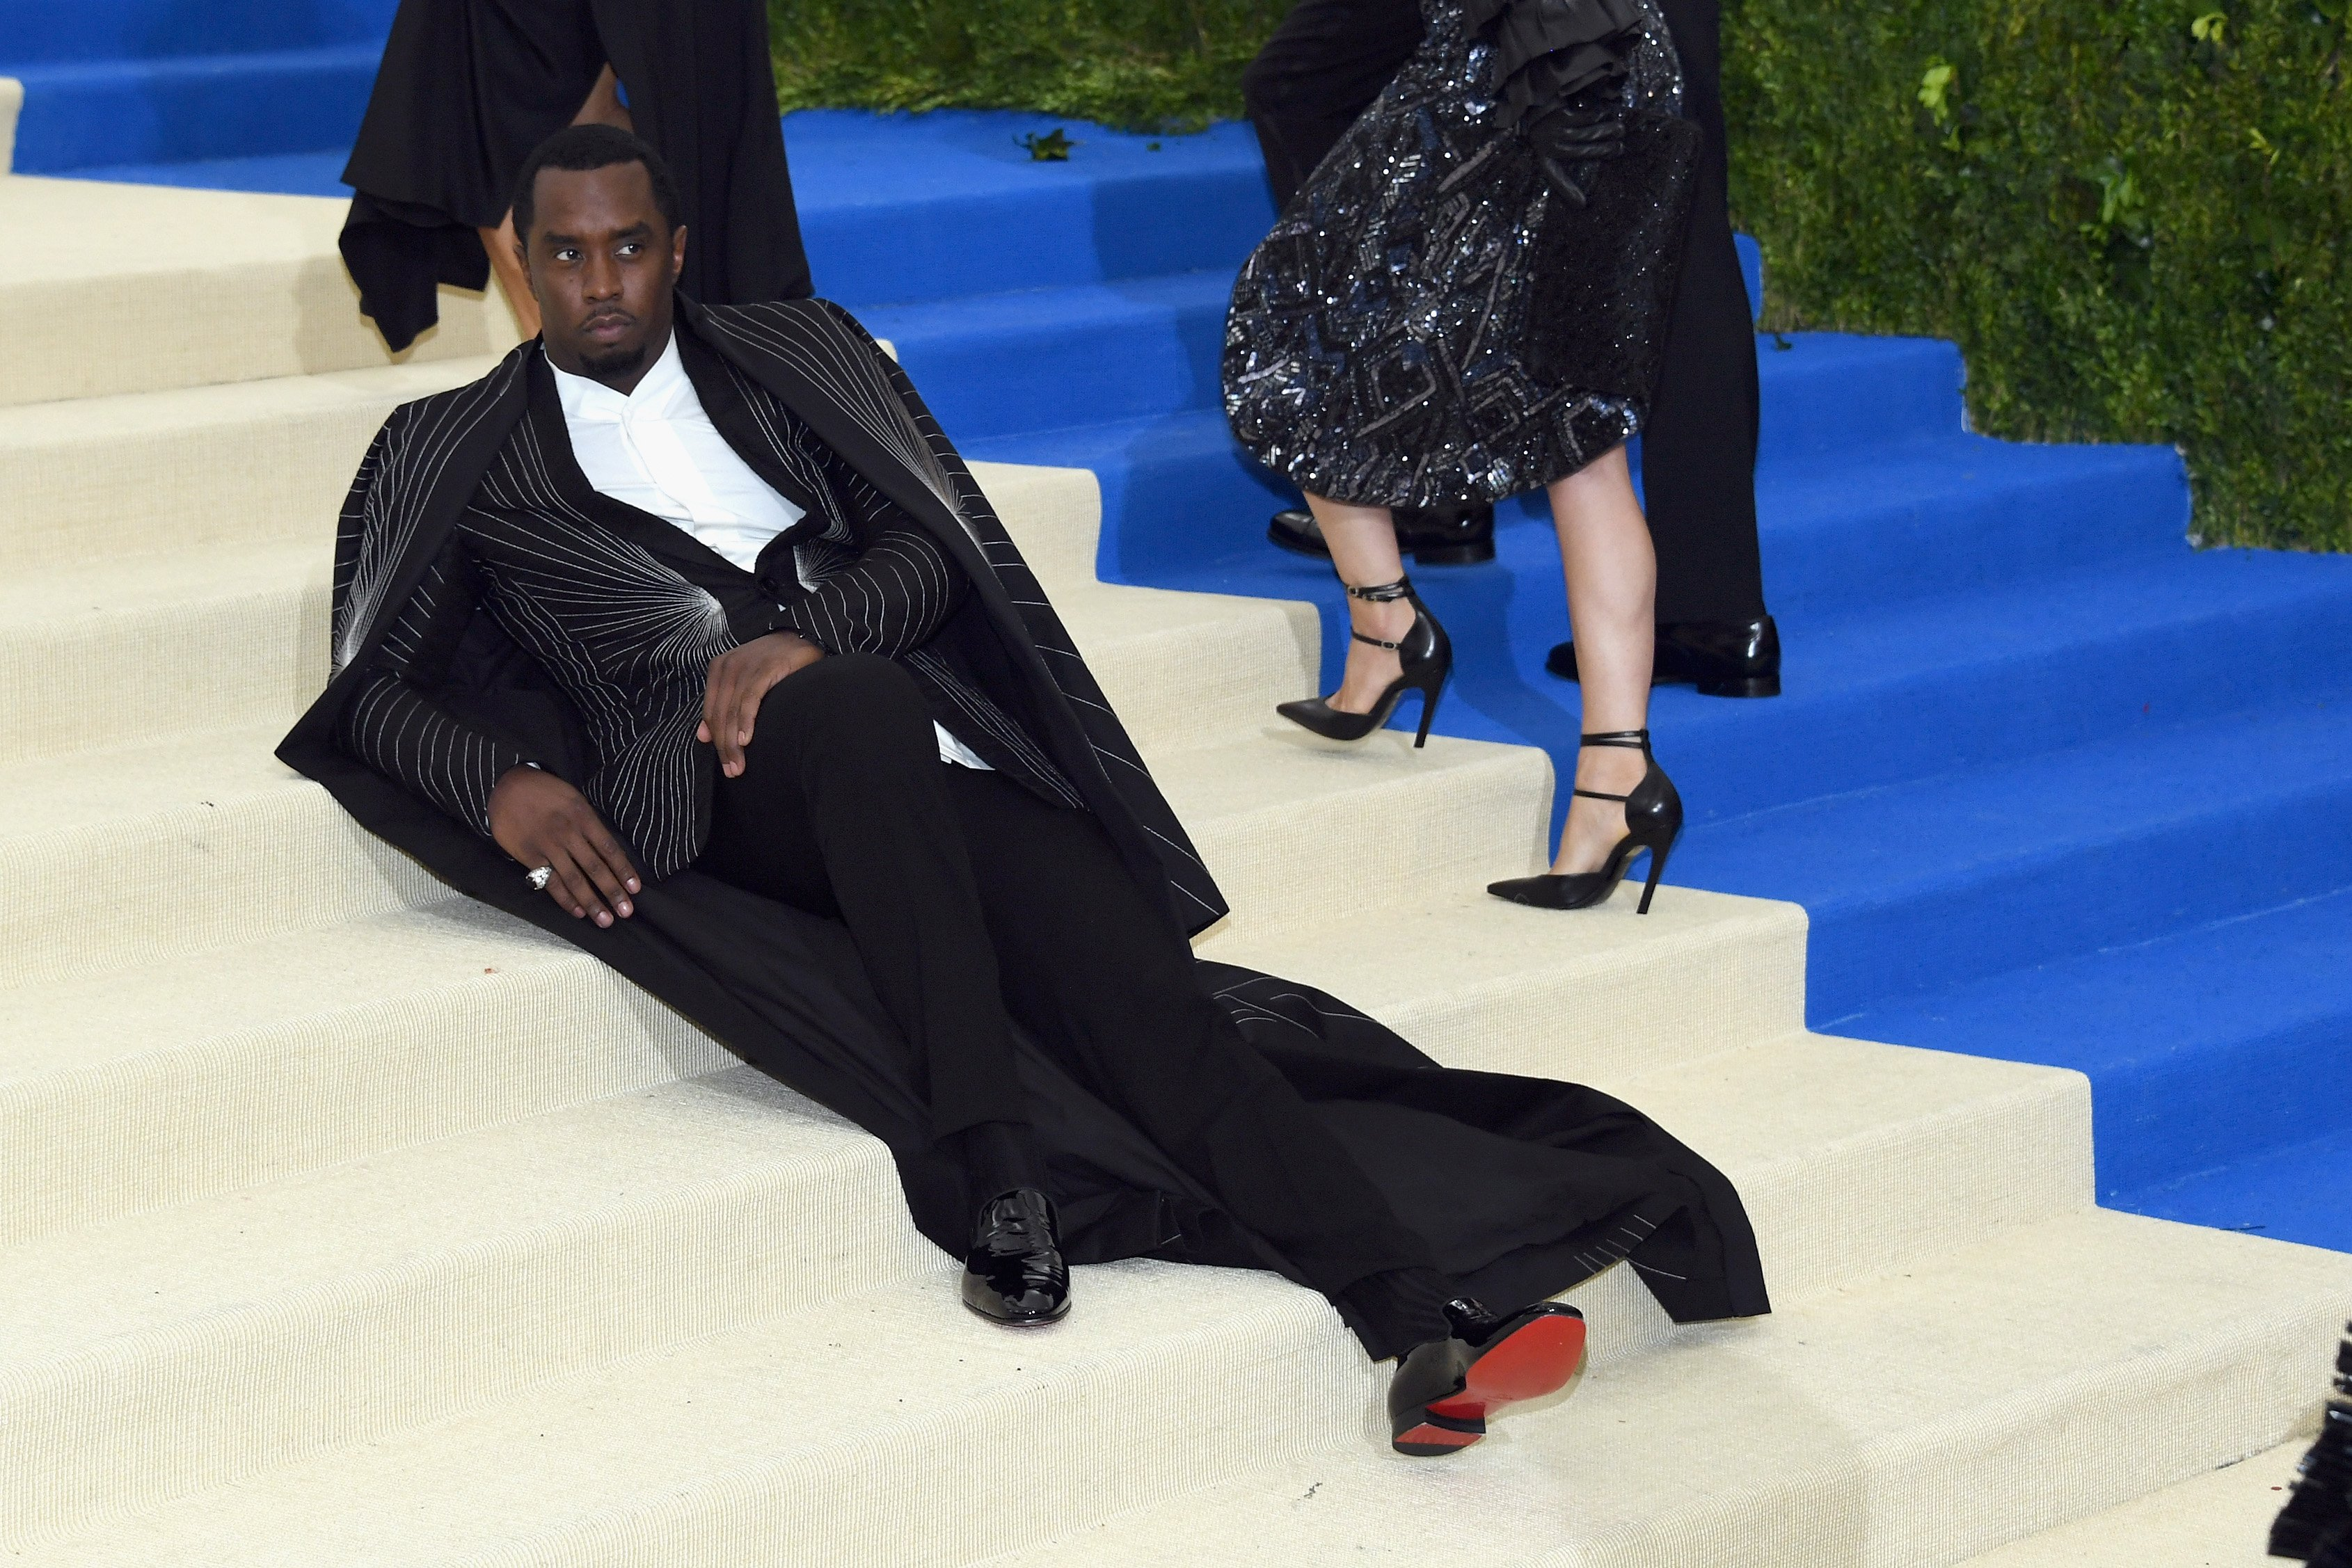 Sean 'Diddy' Combs aka Puff Daddy attends the 'Rei Kawakubo/Comme des Garcons: Art Of The In-Between' Costume Institute Gala at Metropolitan Museum of Art on May 1, 2017 in New York City